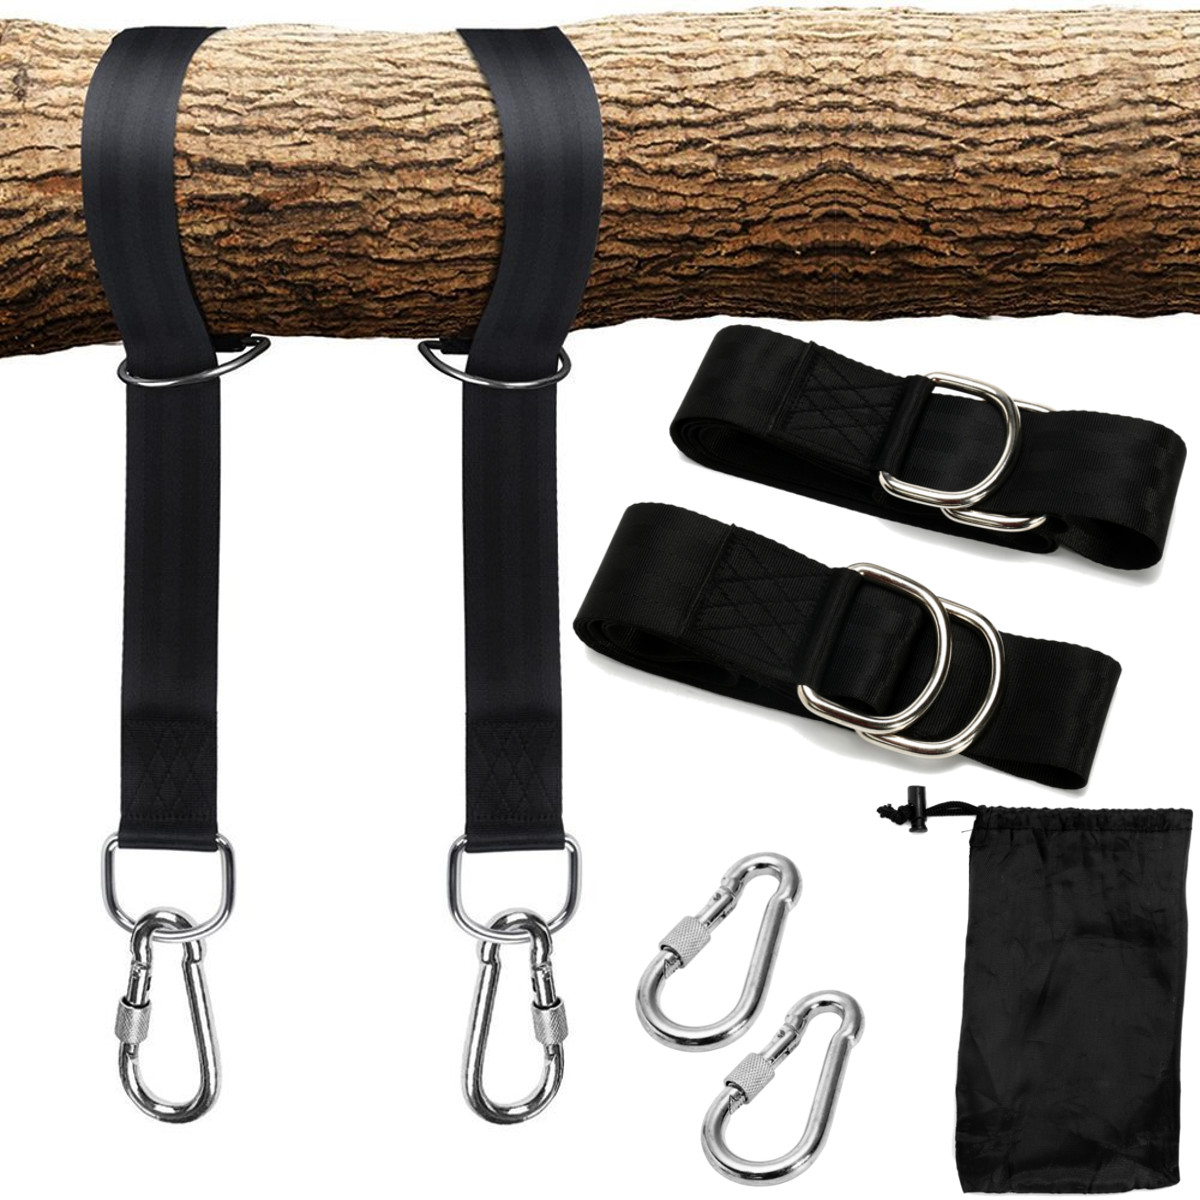 350KG Load Tree Swing Hanging Kit 2Pcs Hammock Straps 150x5cm Extra Long Capacity Outdoor Camping Hiking Hammock Hanging Belt350KG Load Tree Swing Hanging Kit 2Pcs Hammock Straps 150x5cm Extra Long Capacity Outdoor Camping Hiking Hammock Hanging Belt